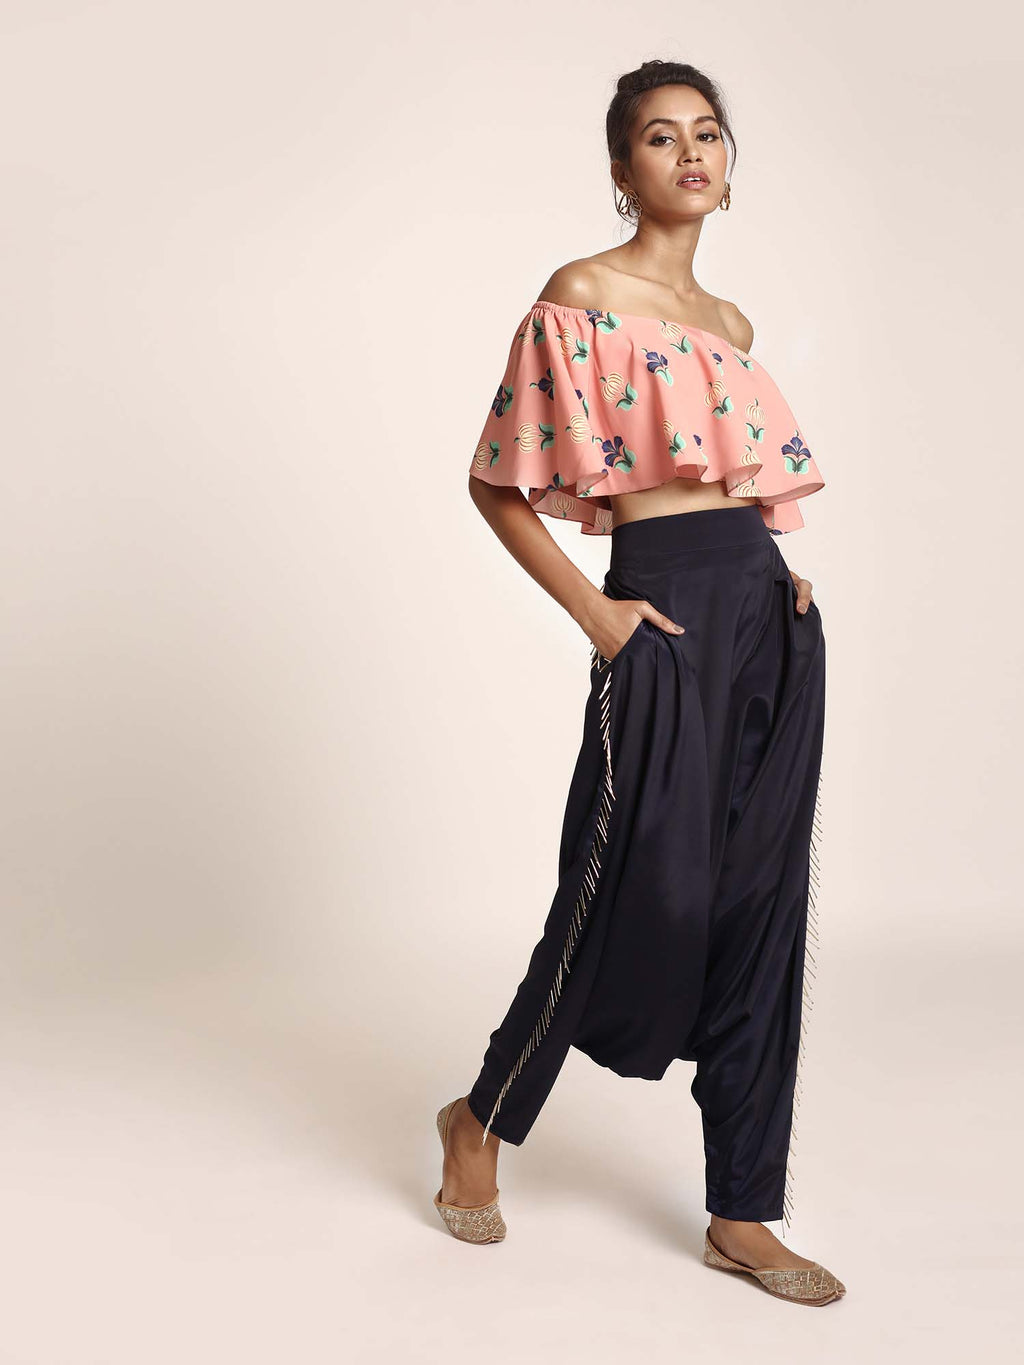 Coral Printed Art Crepe Ruffle Off Shoulder Top with Navy Art Crepe Low Crotch Pant - Riviera Closet